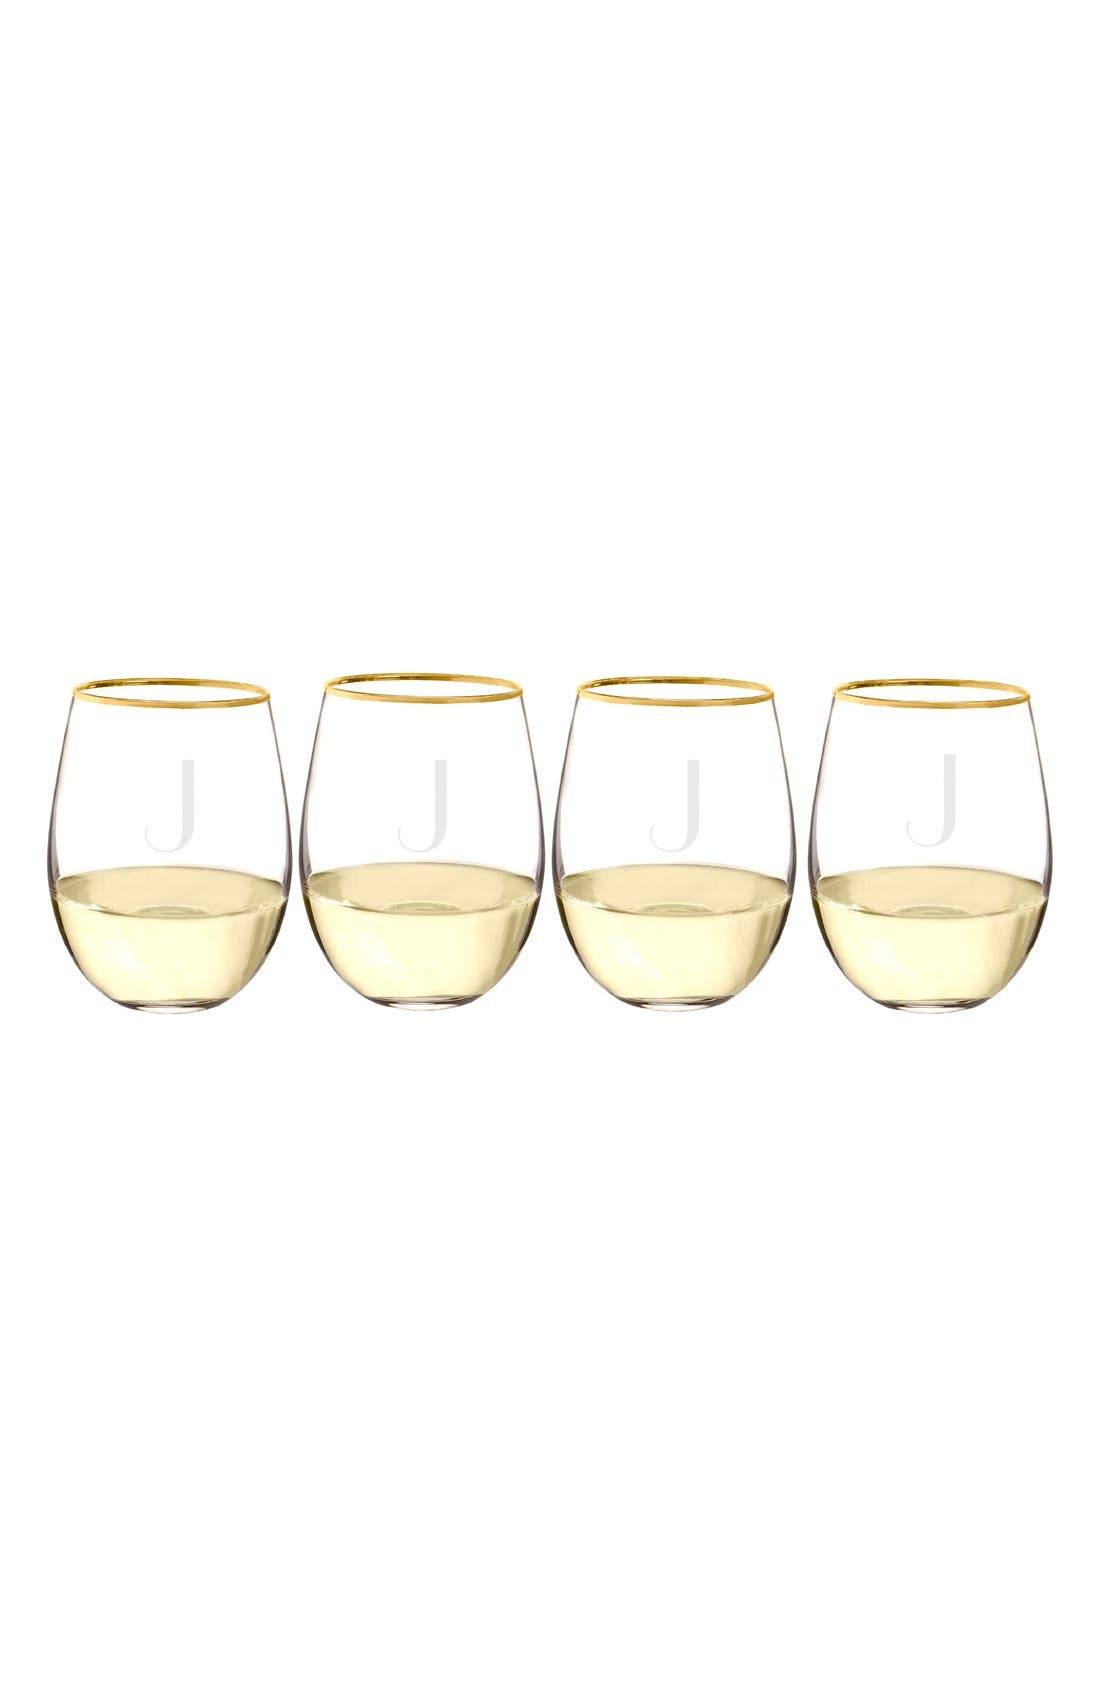 Cathy's Concepts Set of 4 Monogram Gold Rim Stemless Wine Glasses